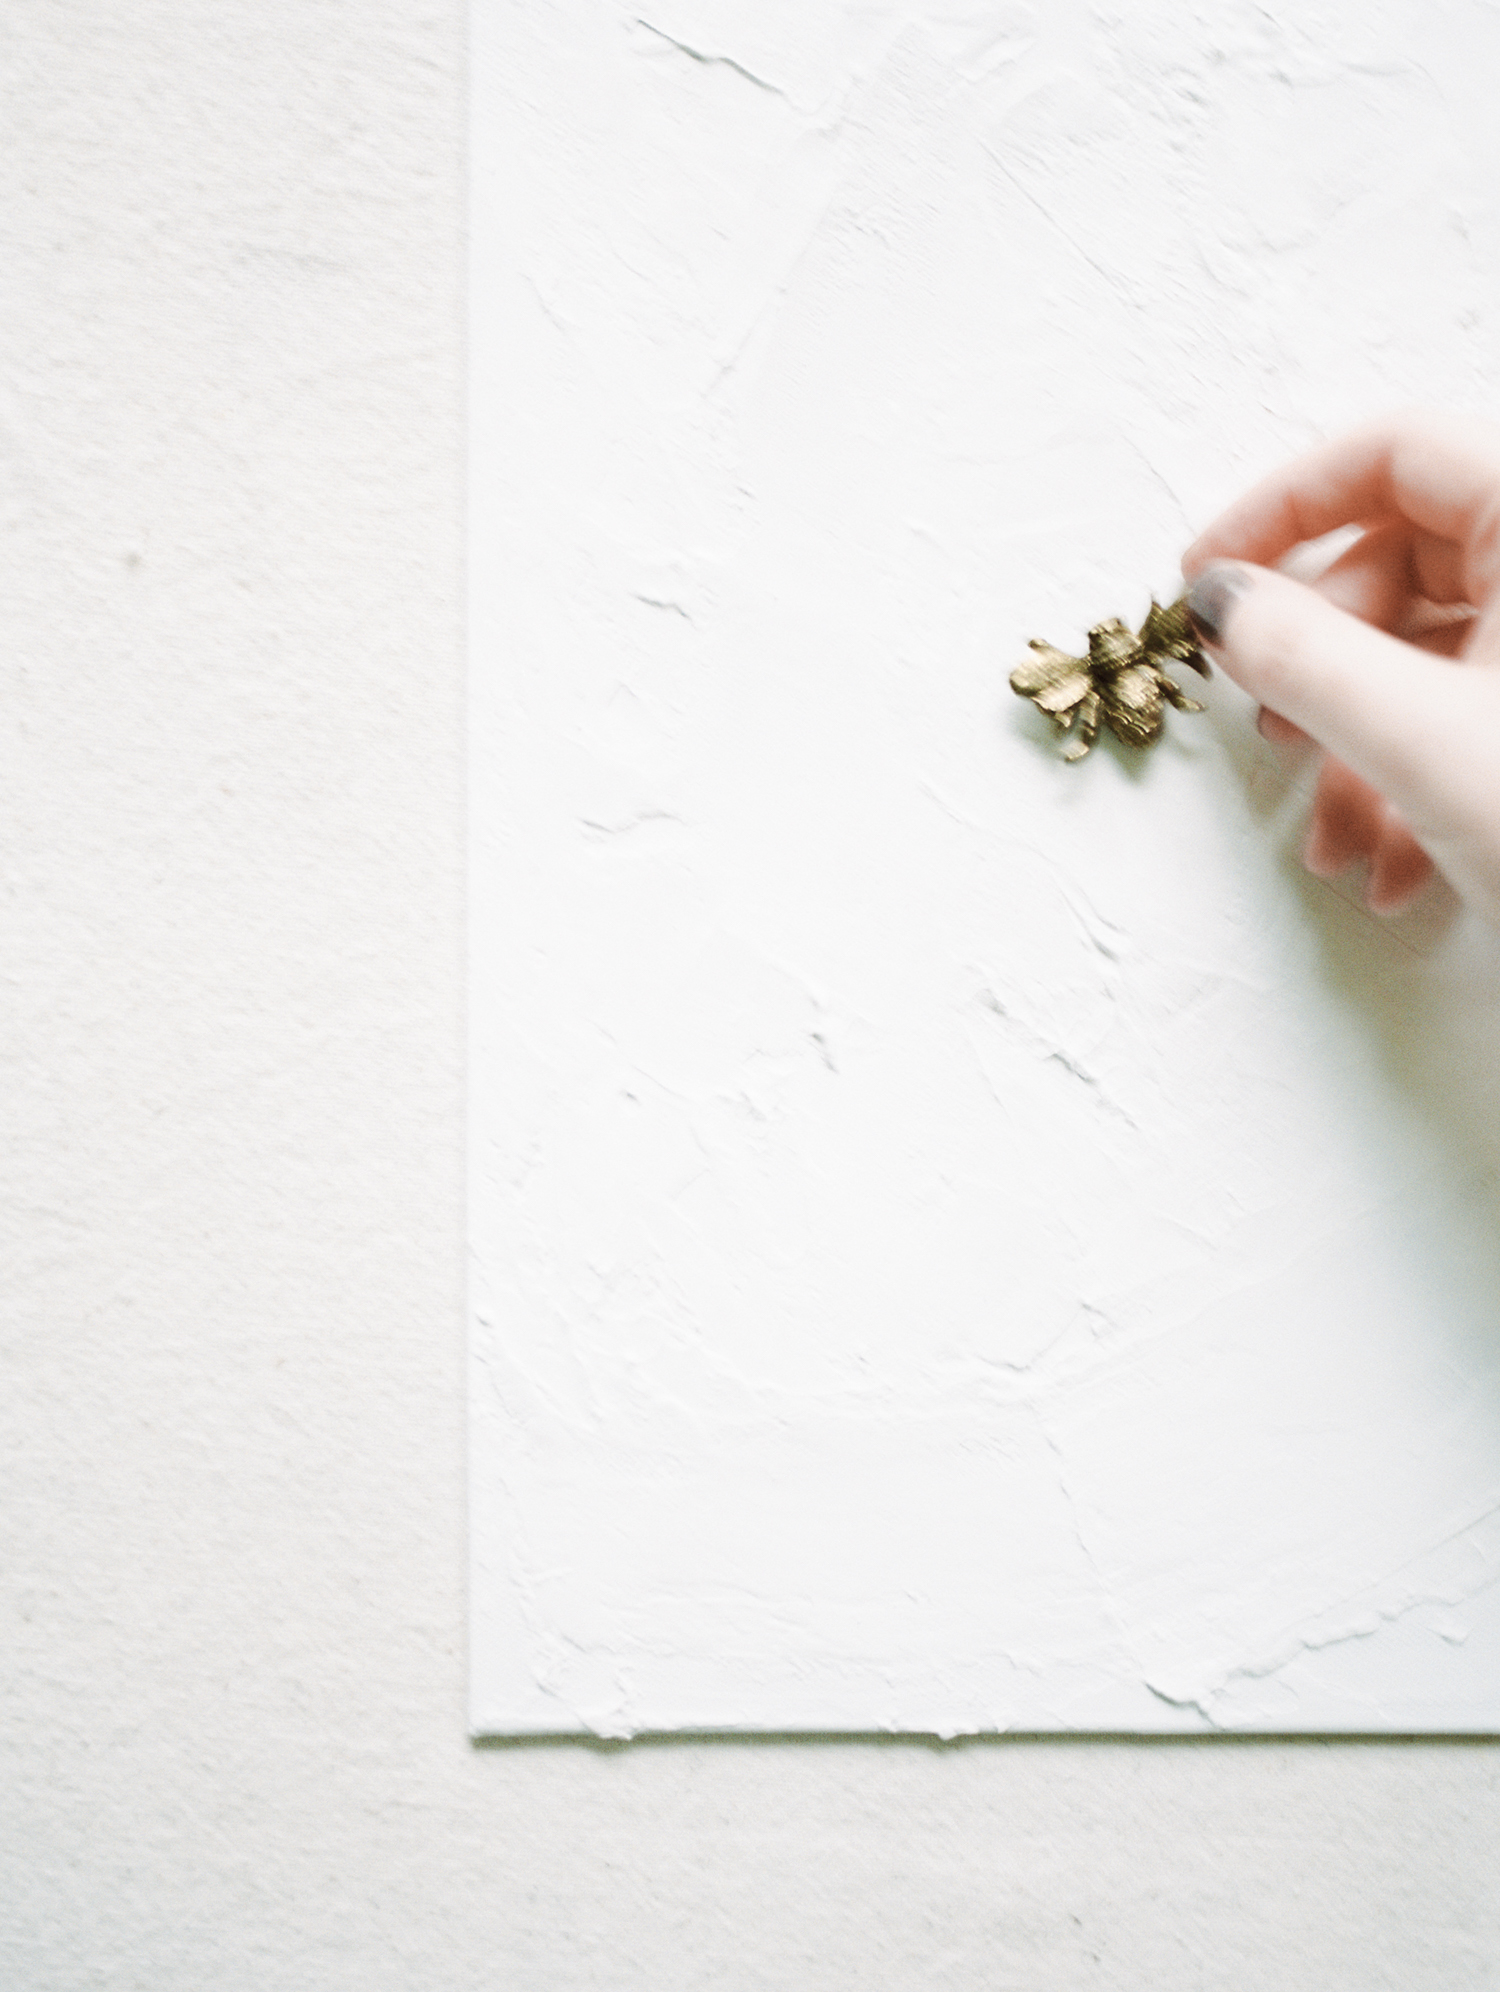 An artist's hand reaches for a small brass honeybee resting atop a white plaster and paint surface during a brand shoot on film in Michigan